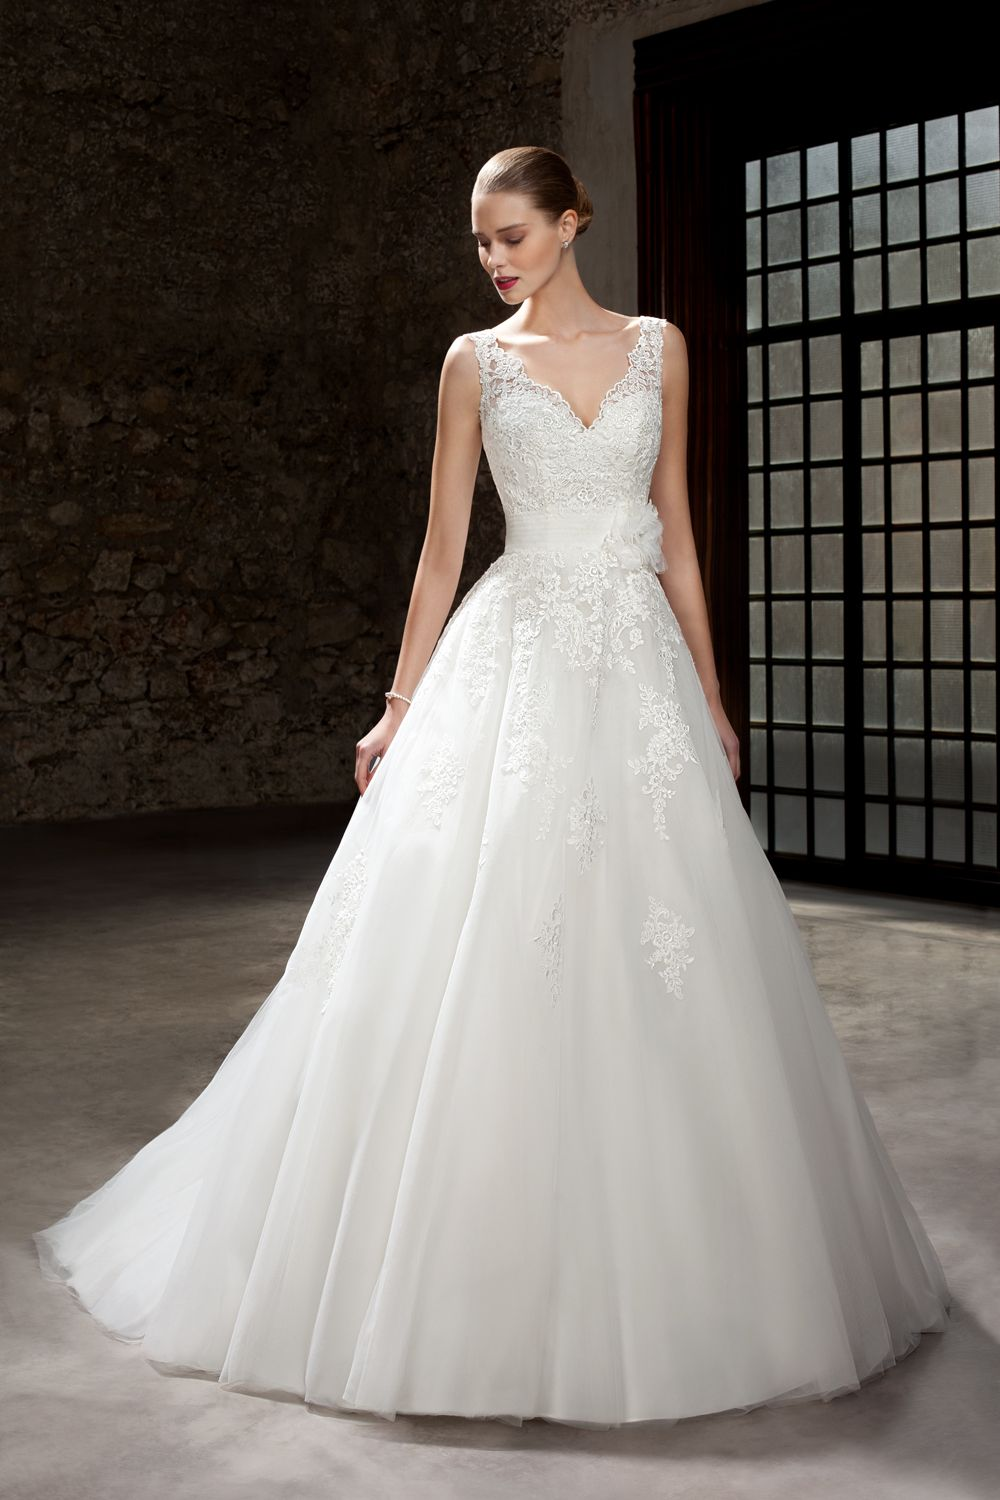 Wedding dresses in london shops  Cosmobella  Style   big full wedding dresses  Pinterest